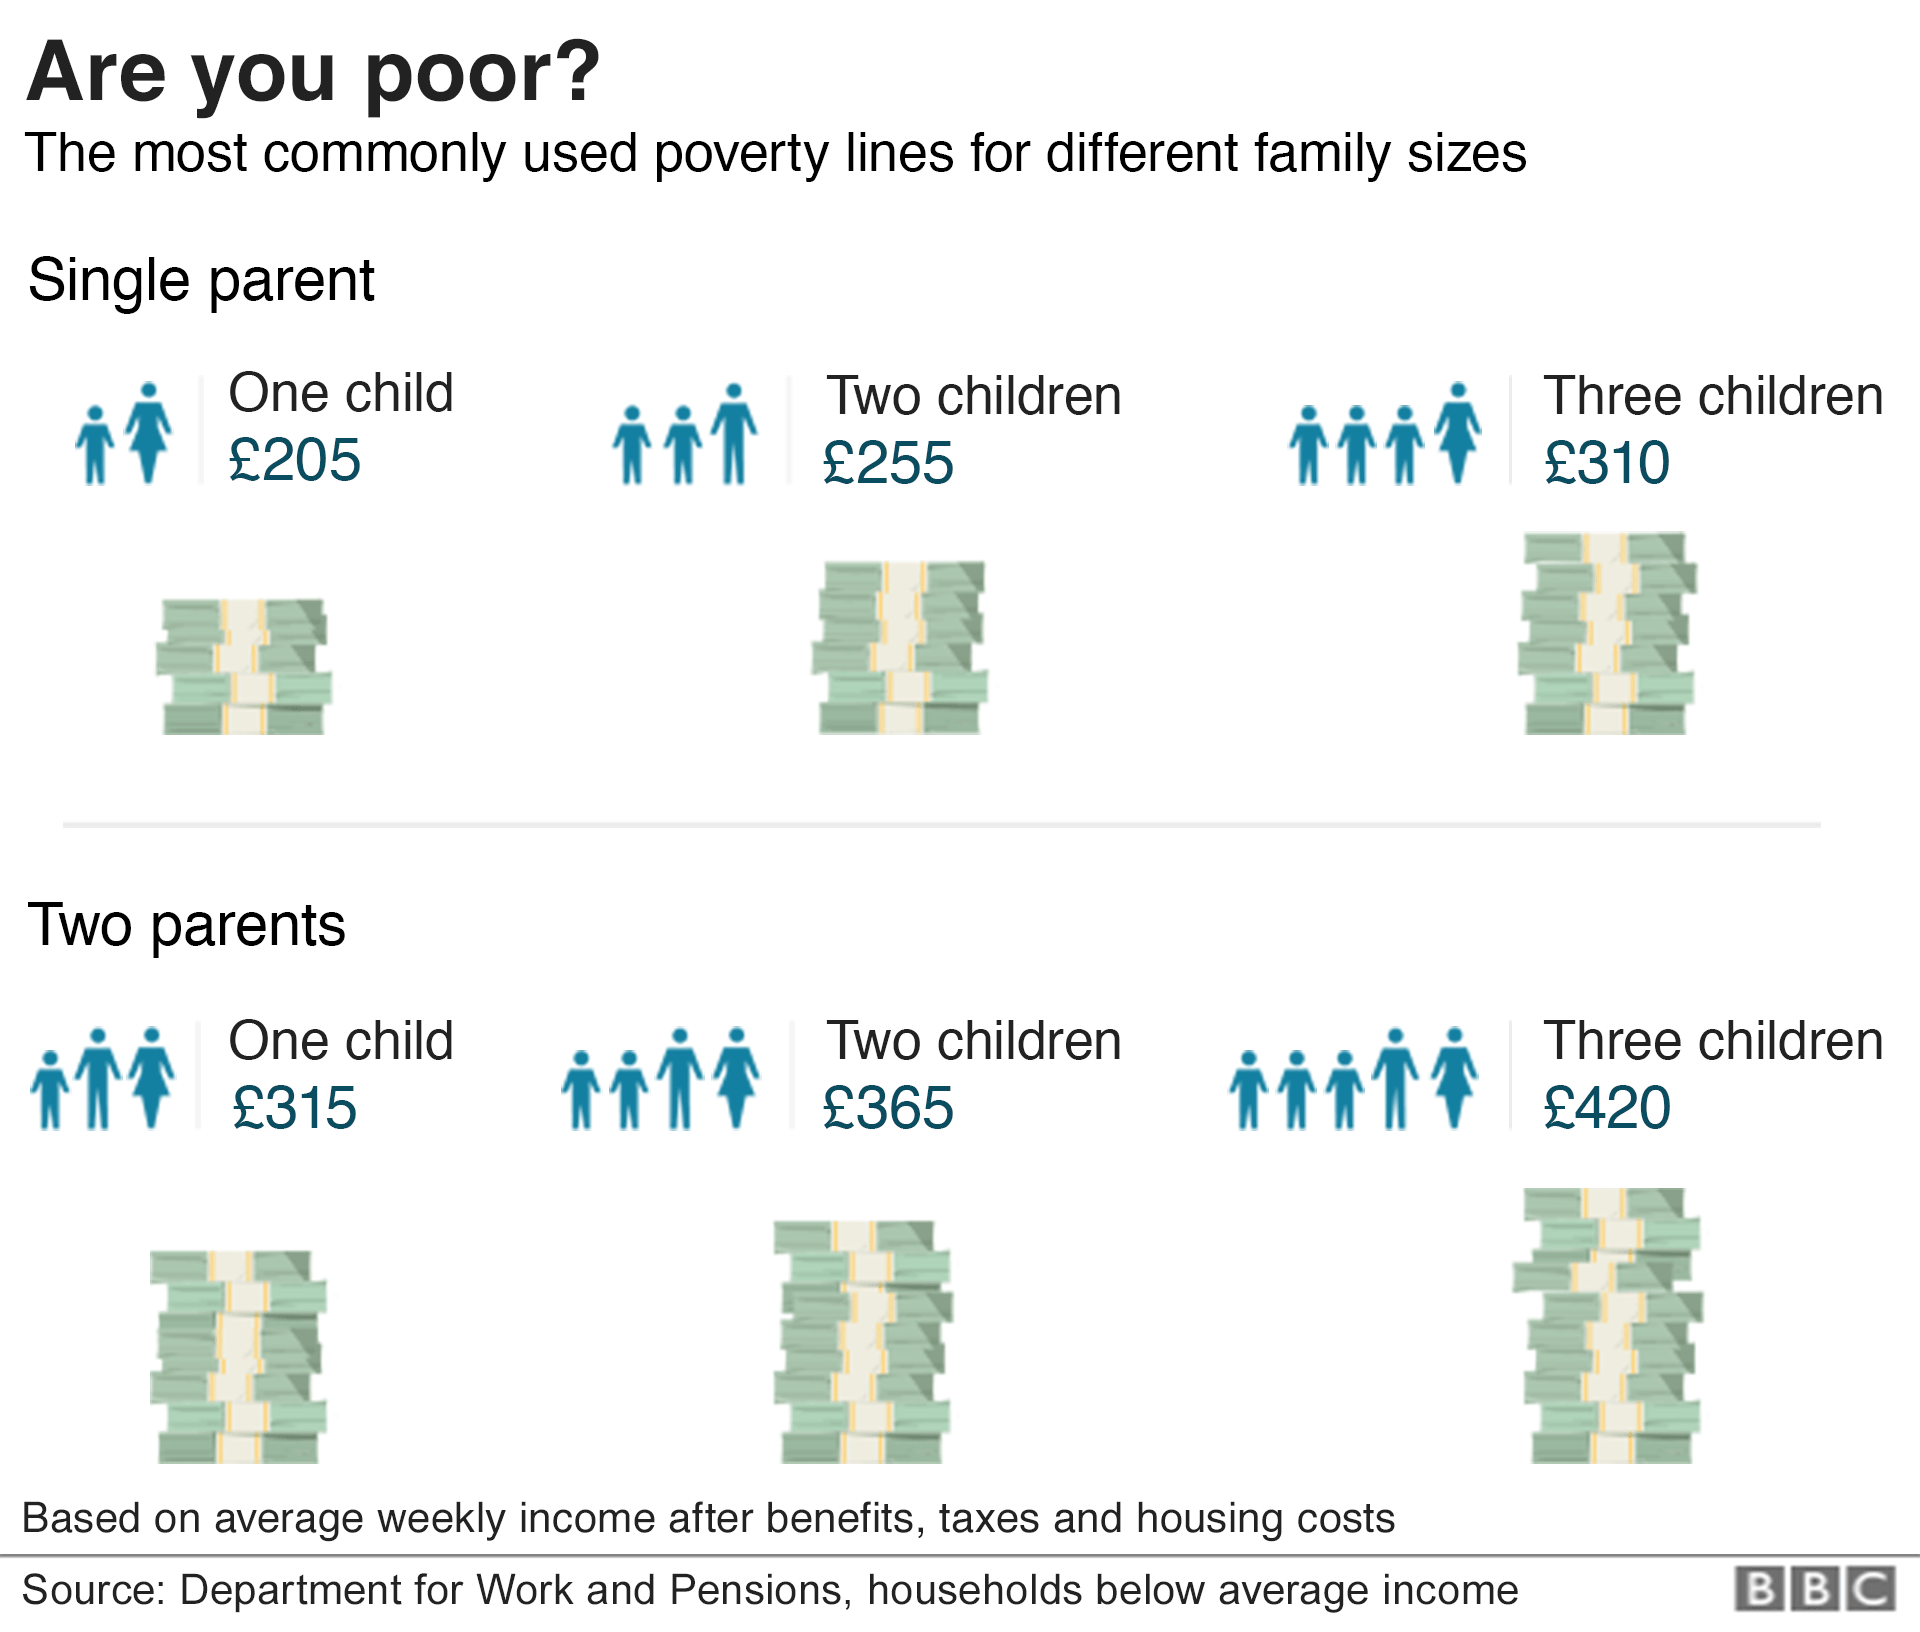 Are you poor?